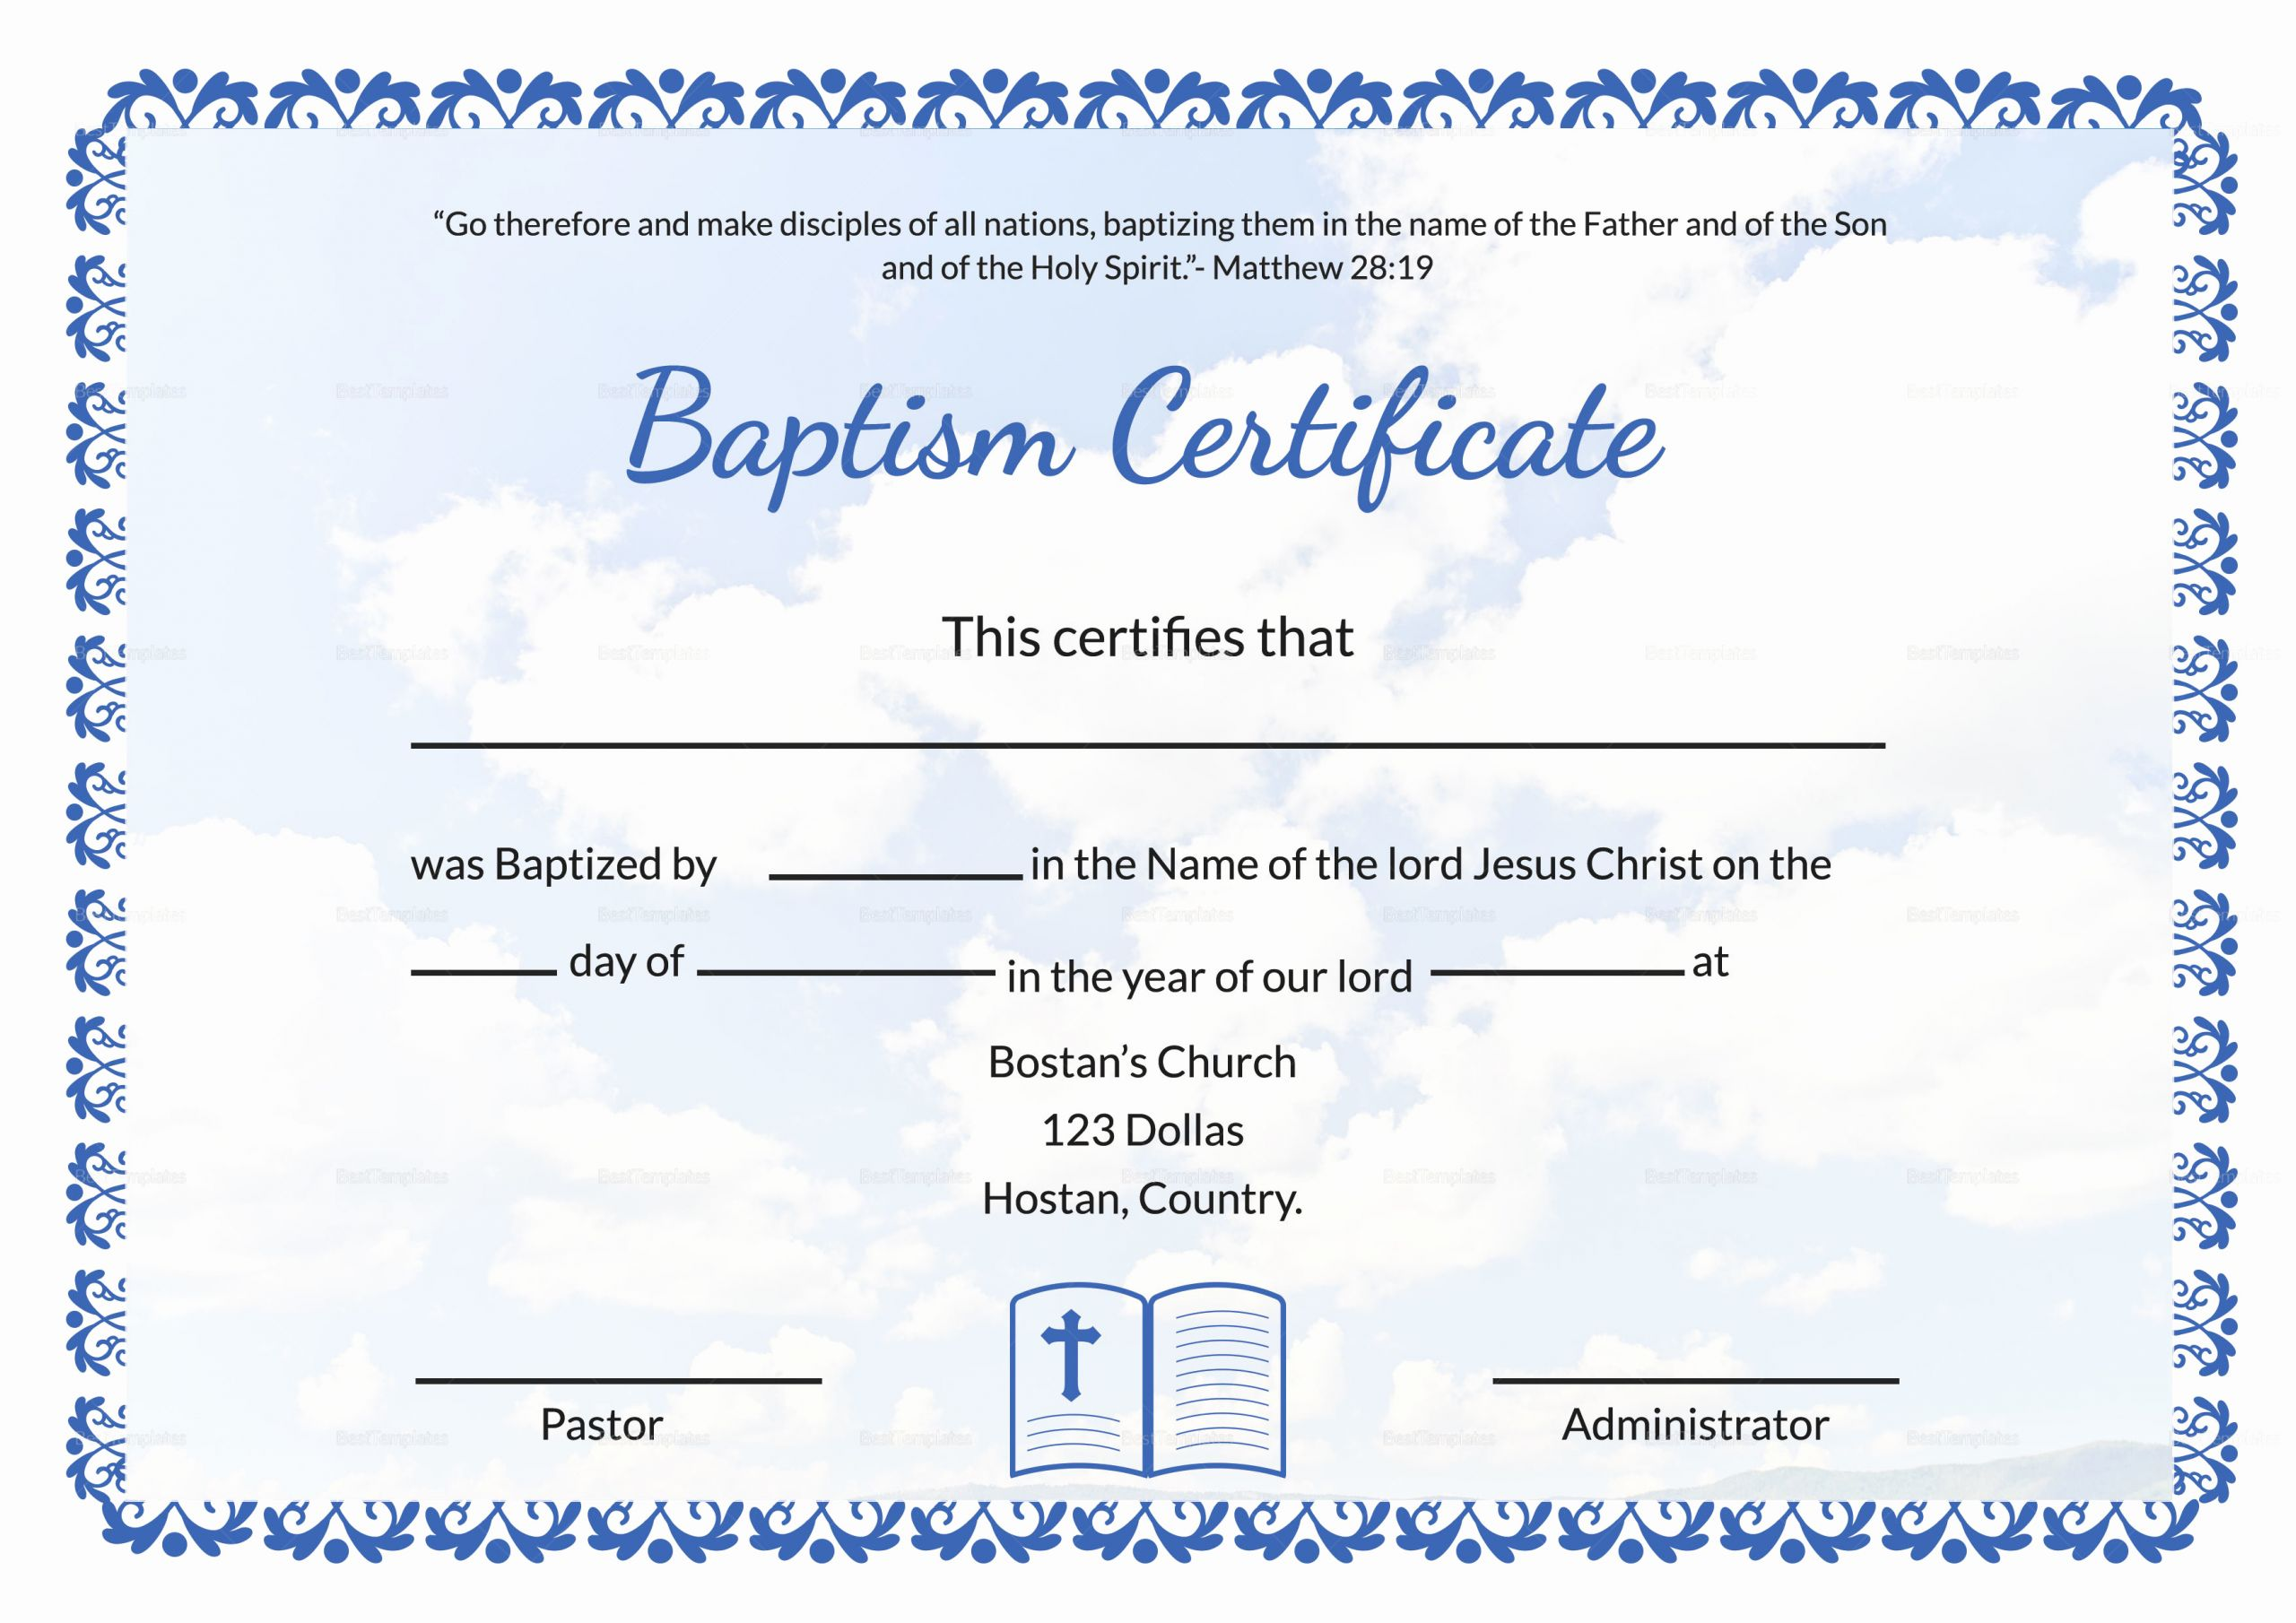 Baptism Certificates Free Download New Editable Baptism Certificate Template In Adobe Shop